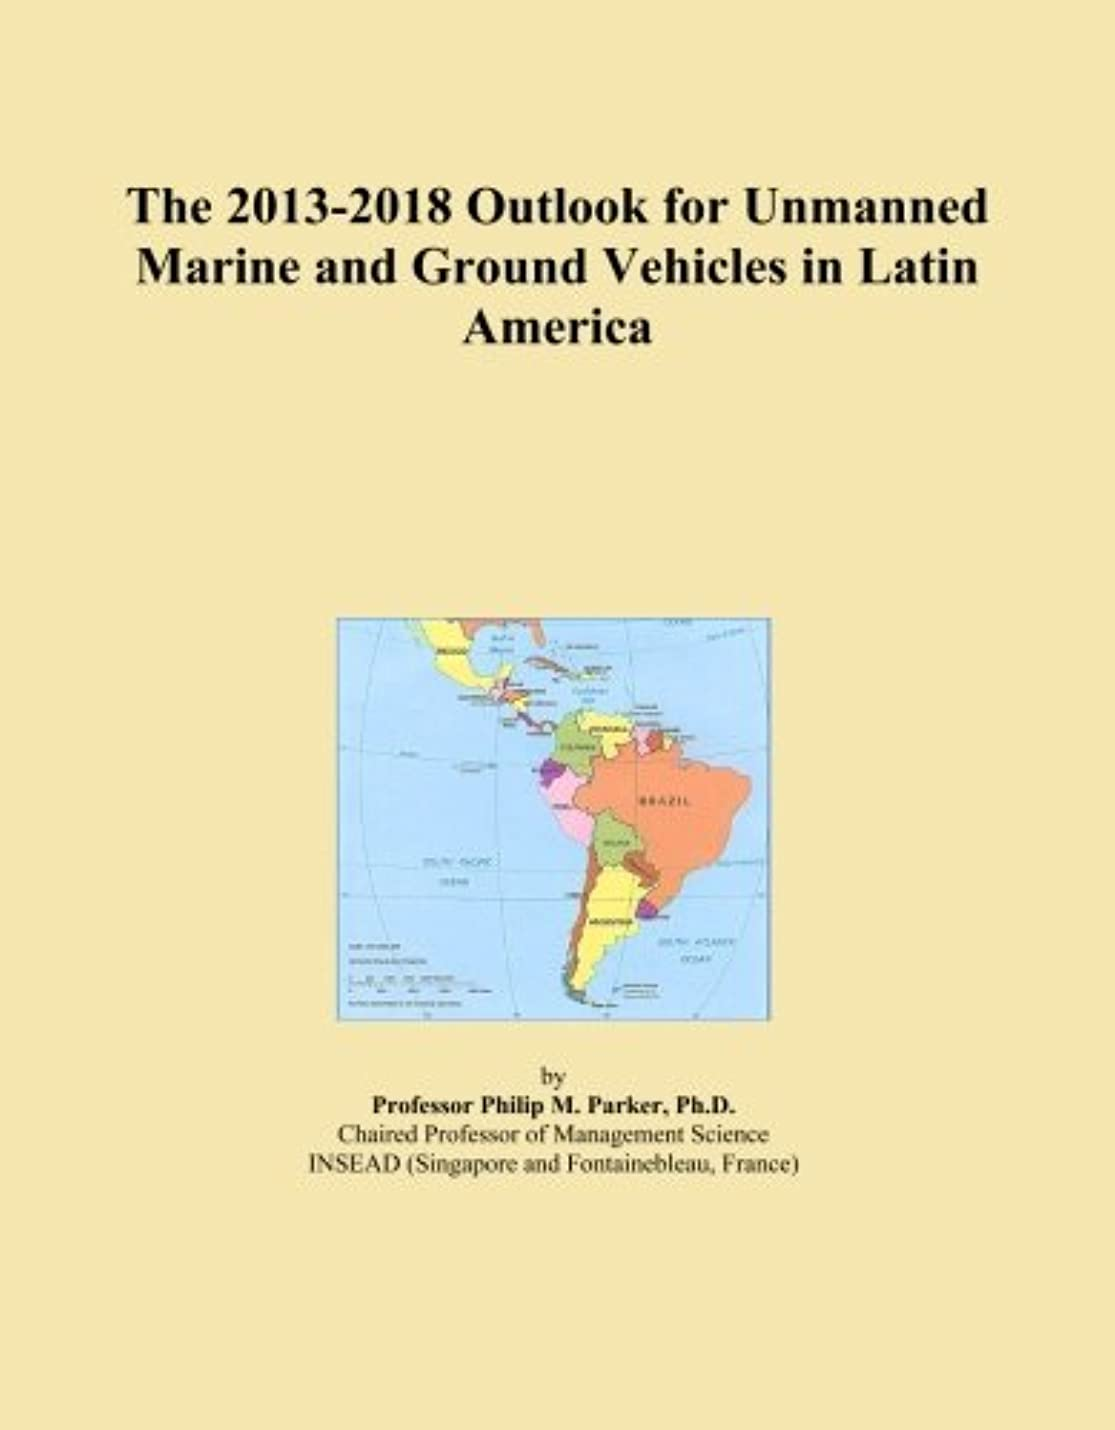 違法会議禁止するThe 2013-2018 Outlook for Unmanned Marine and Ground Vehicles in Latin America